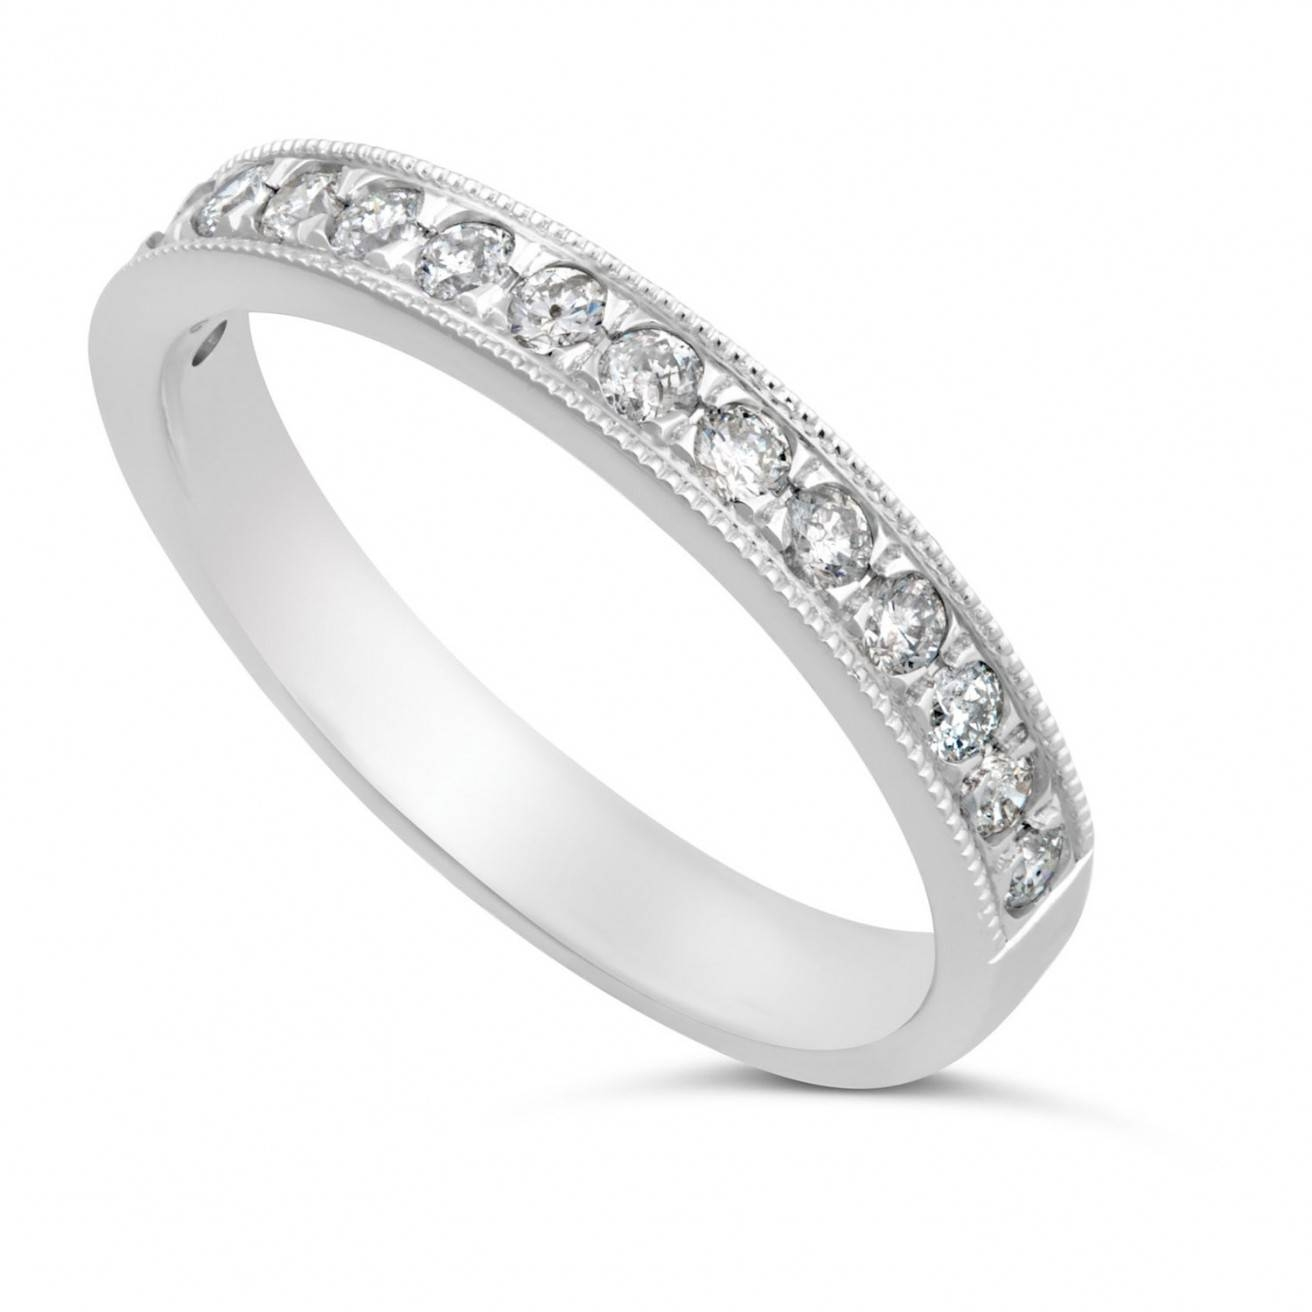 Buy White Gold Wedding Rings Online – Fraser Hart Pertaining To Ladies White Gold Diamond Wedding Bands (View 5 of 15)